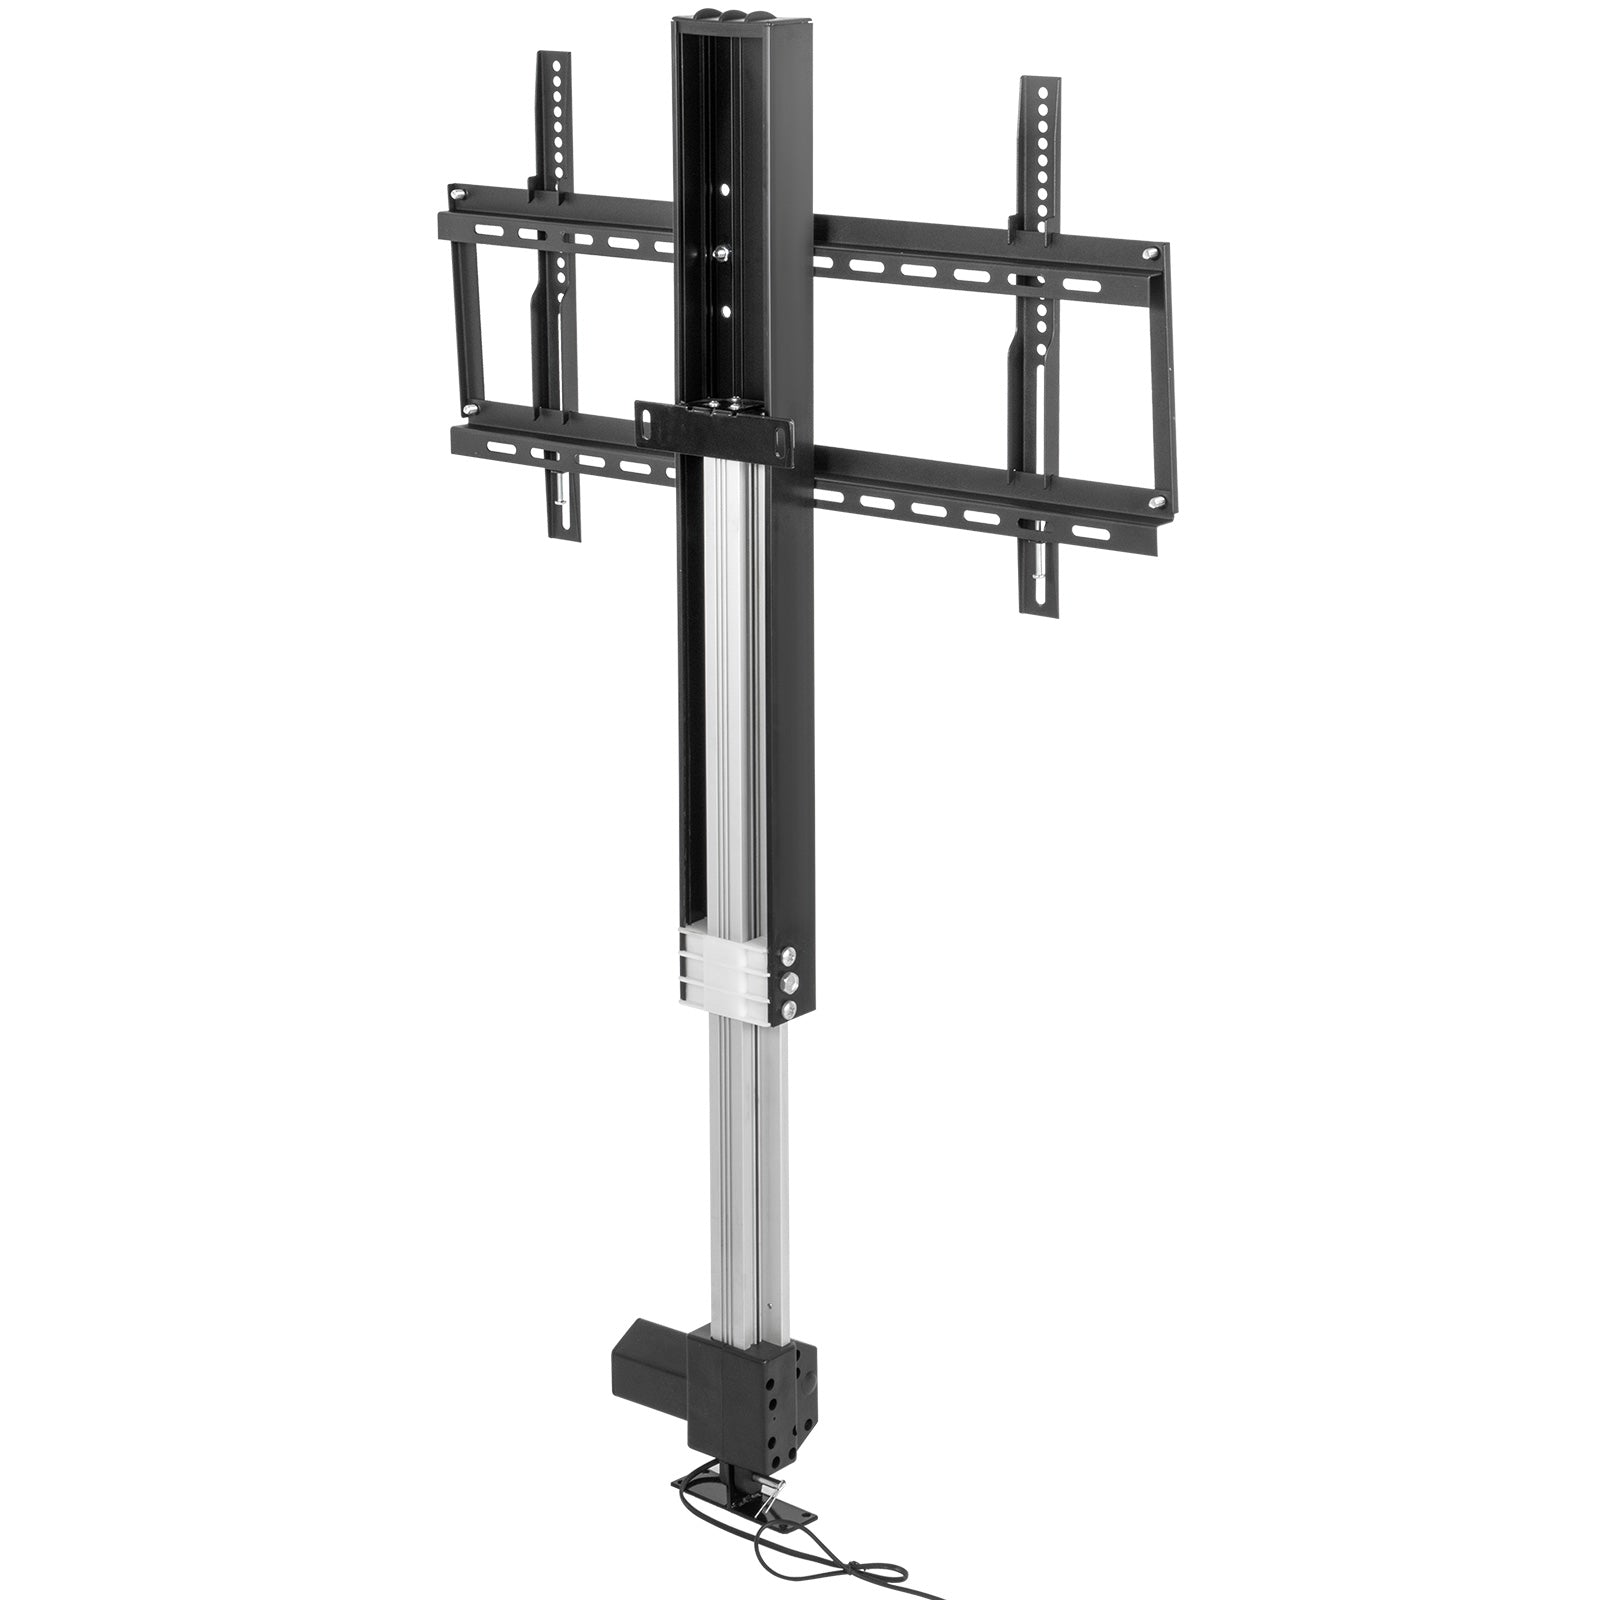 500mm Automatico Tv Ascensore Staffa 4000n Adjustable Weight Capacity 75kg